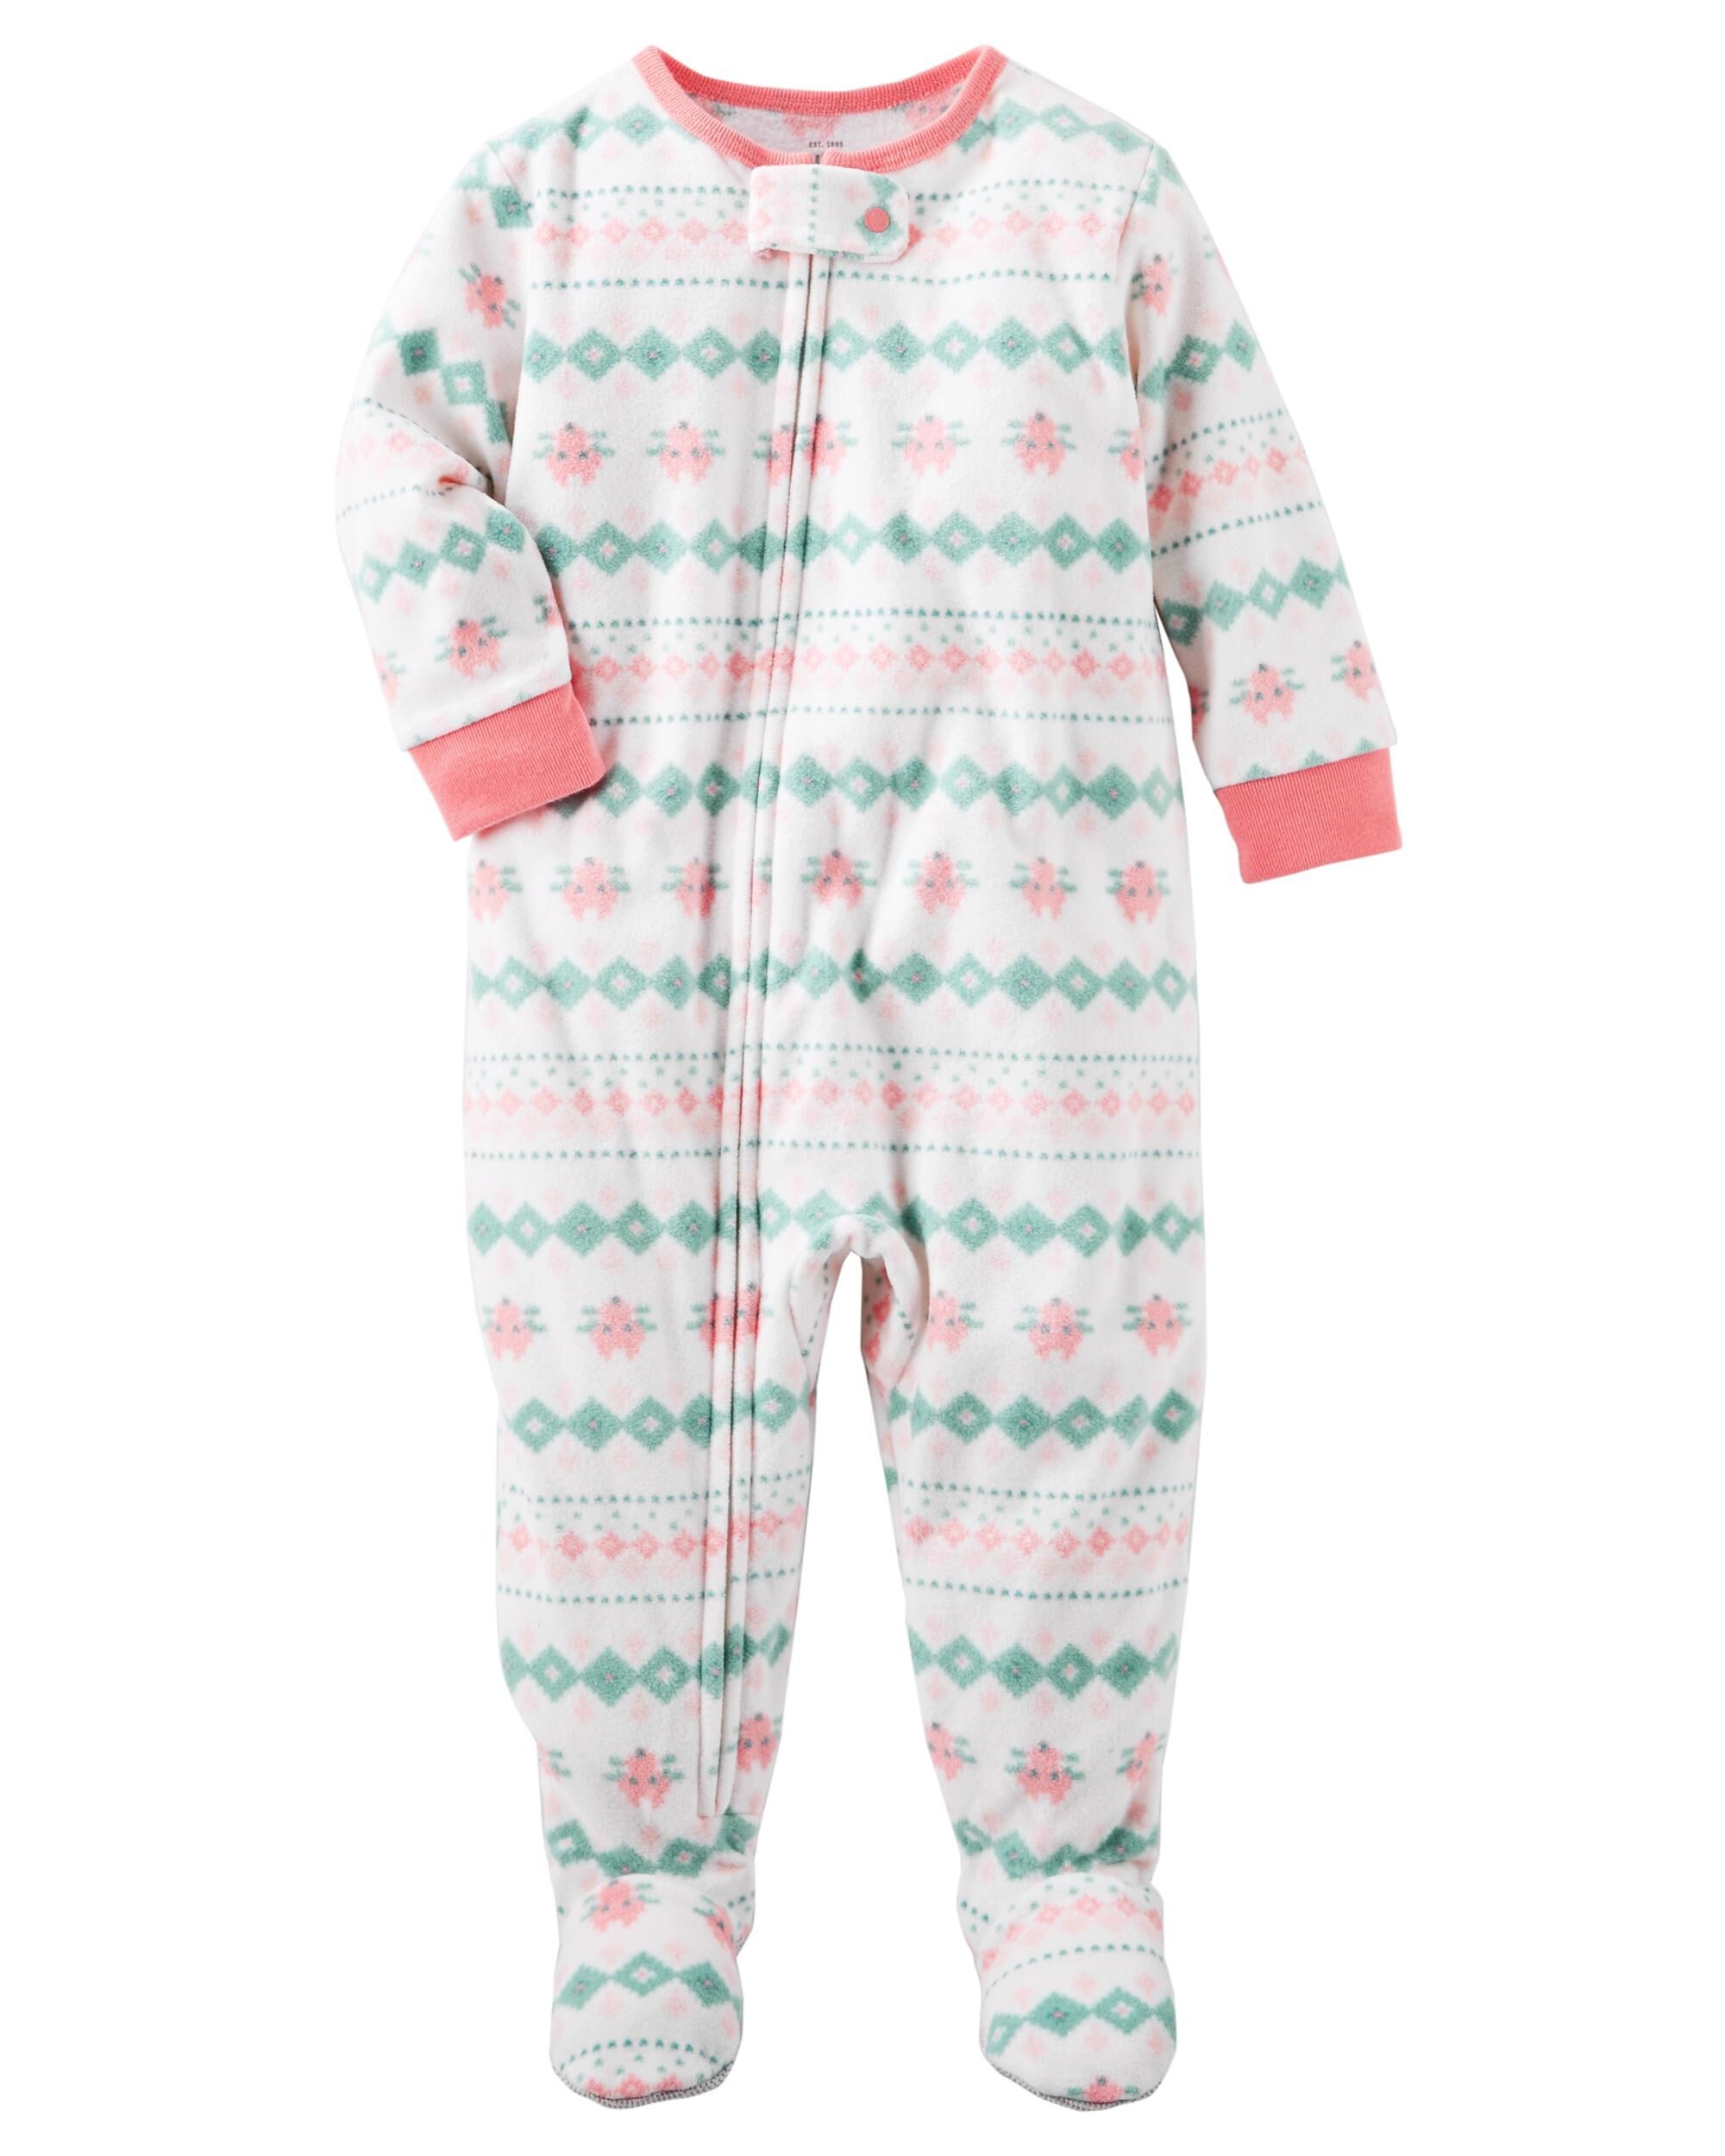 fleece with pyjama toddlers infant sleeper boys button pajama bottoms sleeping sleepers gown suit months one piece cotton feet up without pajamas baby